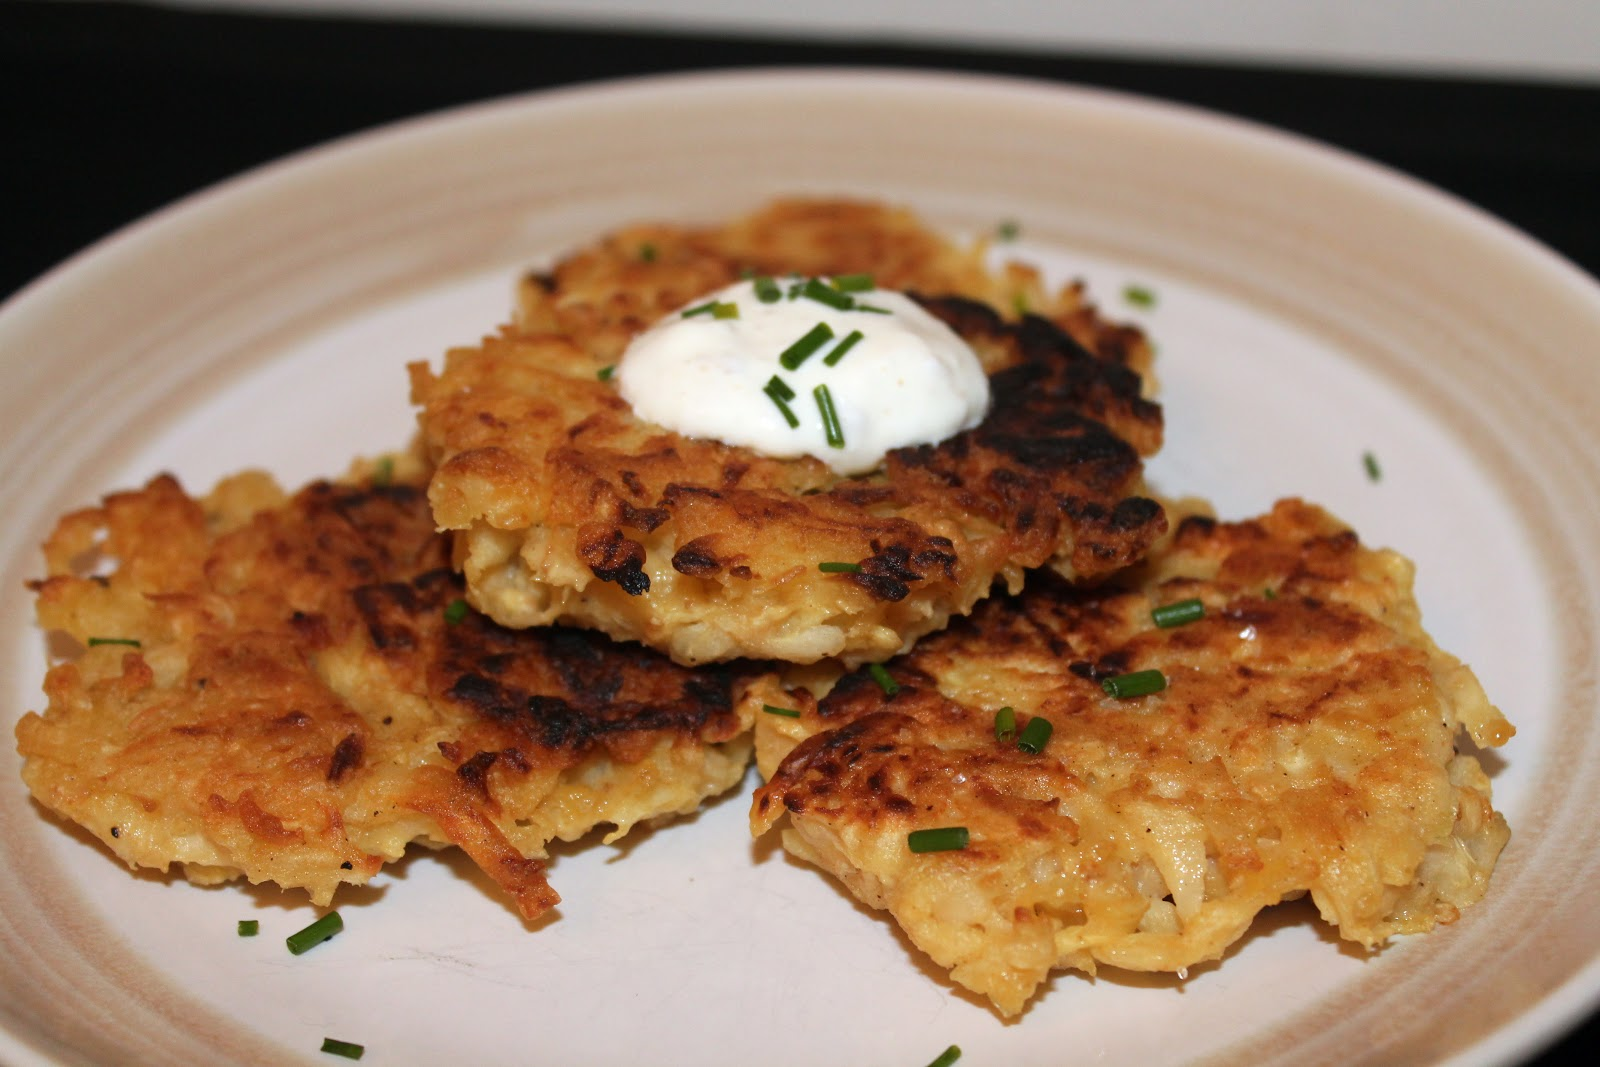 ... latkes sweet potato latkes parsnip latkes with horseradish and dill